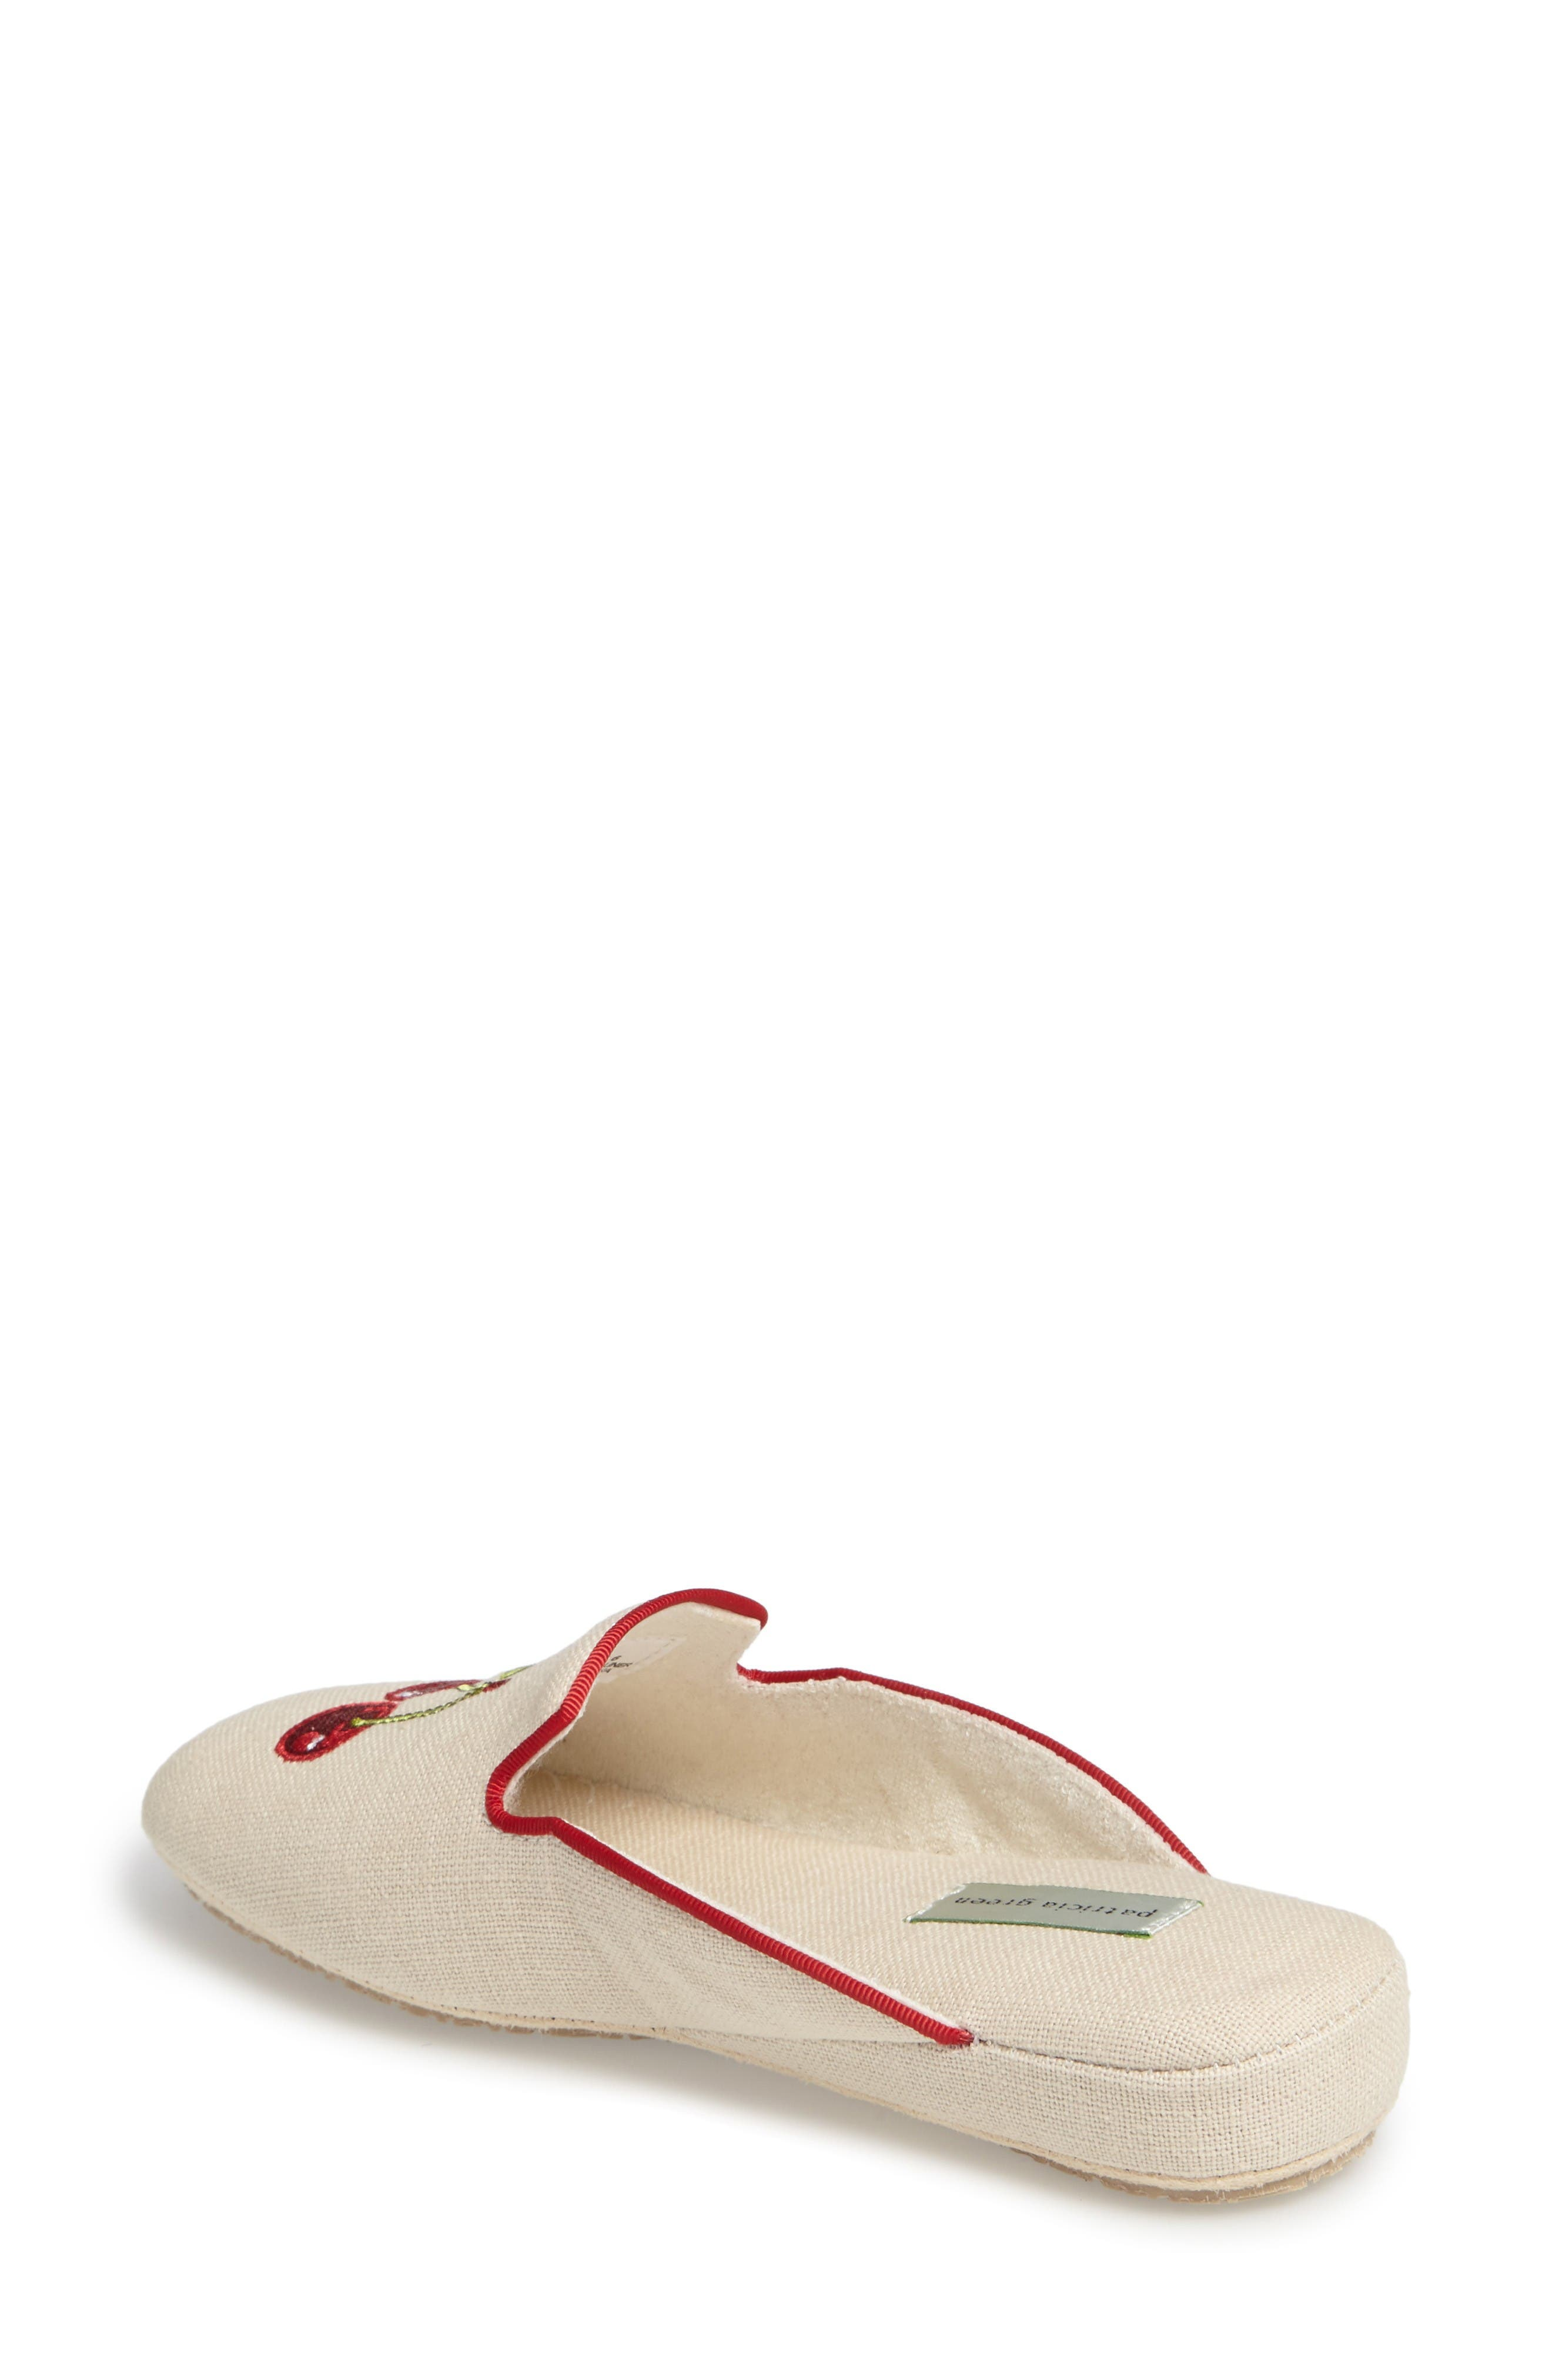 Cherries Slipper,                             Alternate thumbnail 2, color,                             Natural Fabric